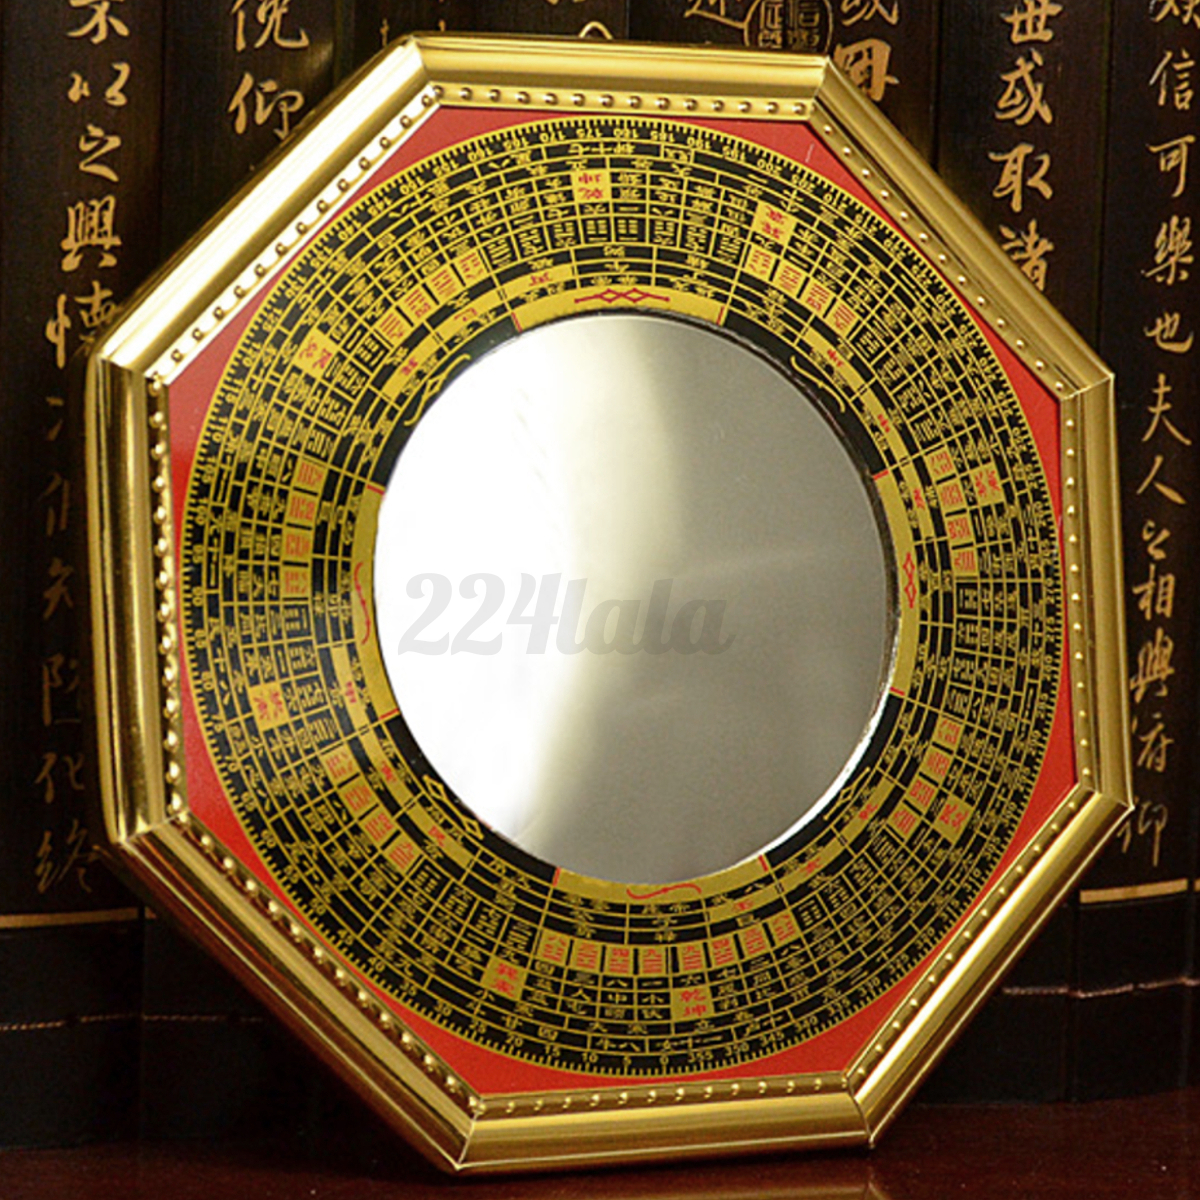 5 chinese oriental protection feng shui home house convex bagua mirror new ebay. Black Bedroom Furniture Sets. Home Design Ideas